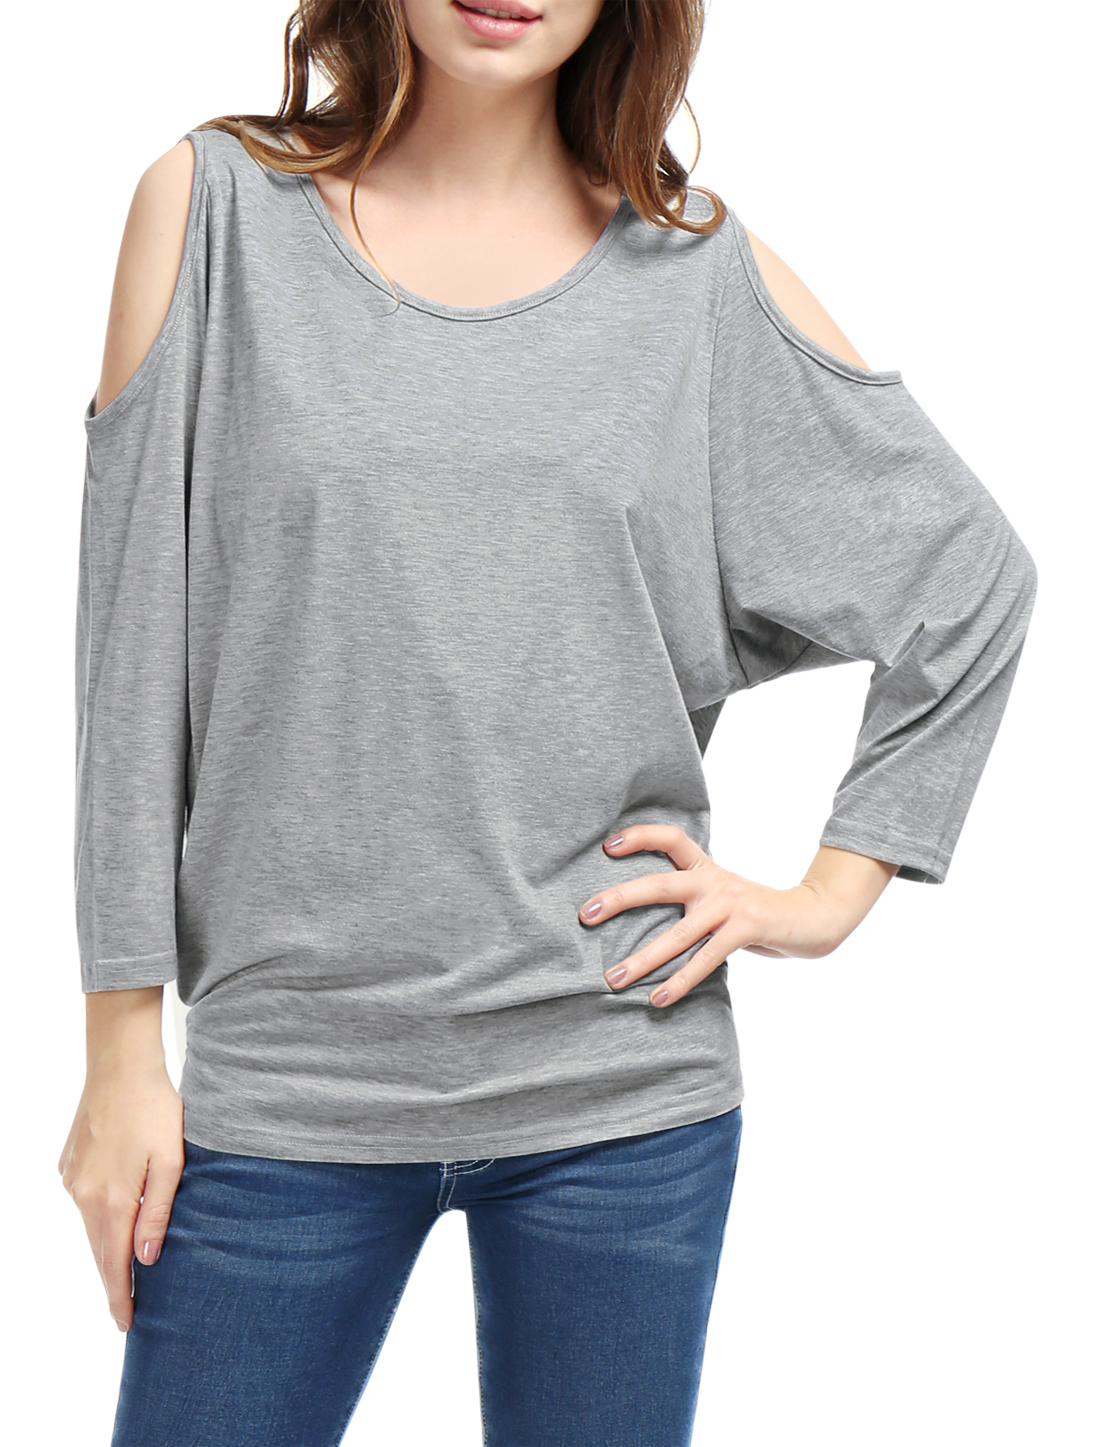 Woman Pure Gray Cutout Shoulder Batwing Sleeve Casual Top Shirt XS